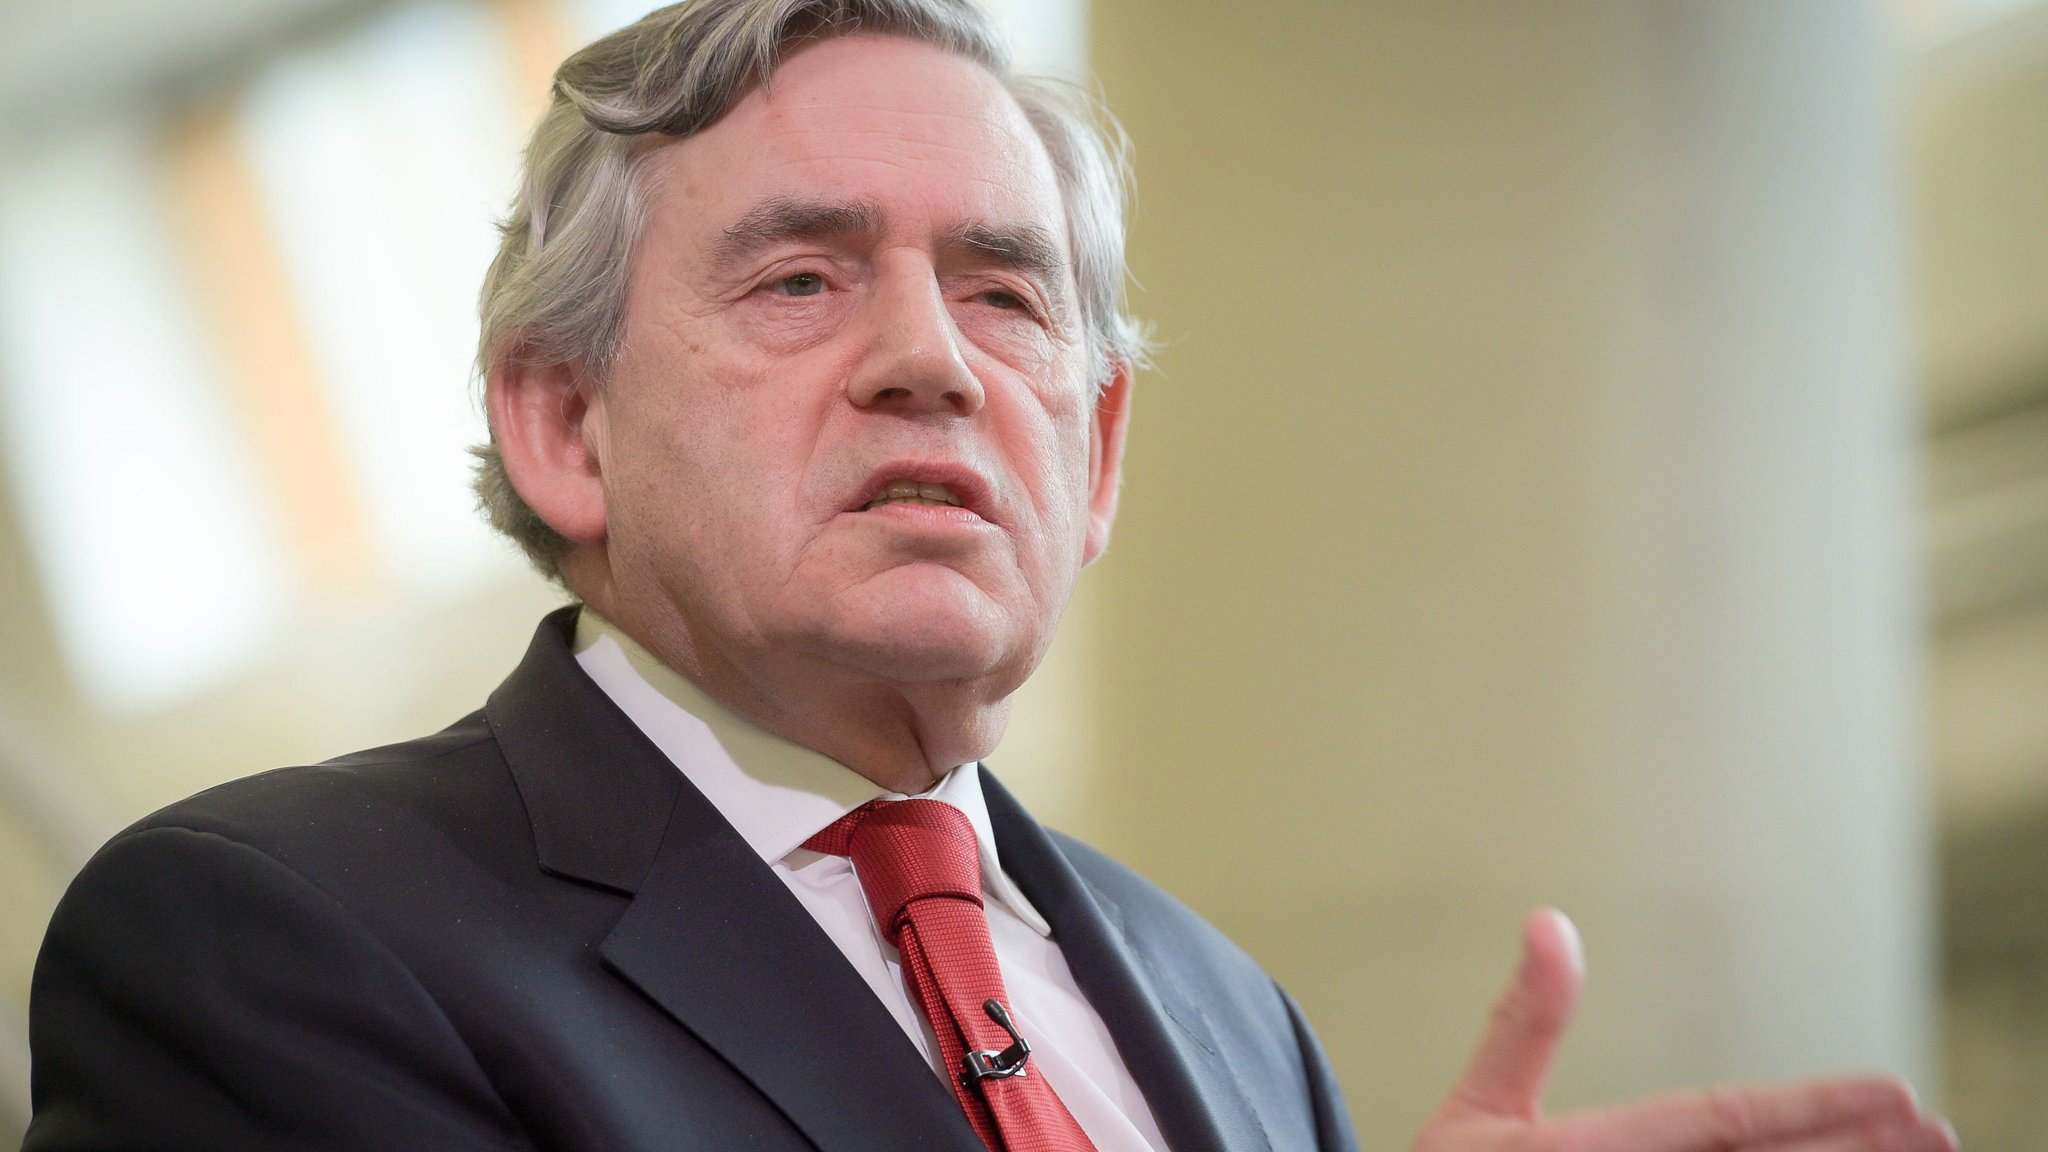 Gordon Brown latest victim of phone hacking scandal